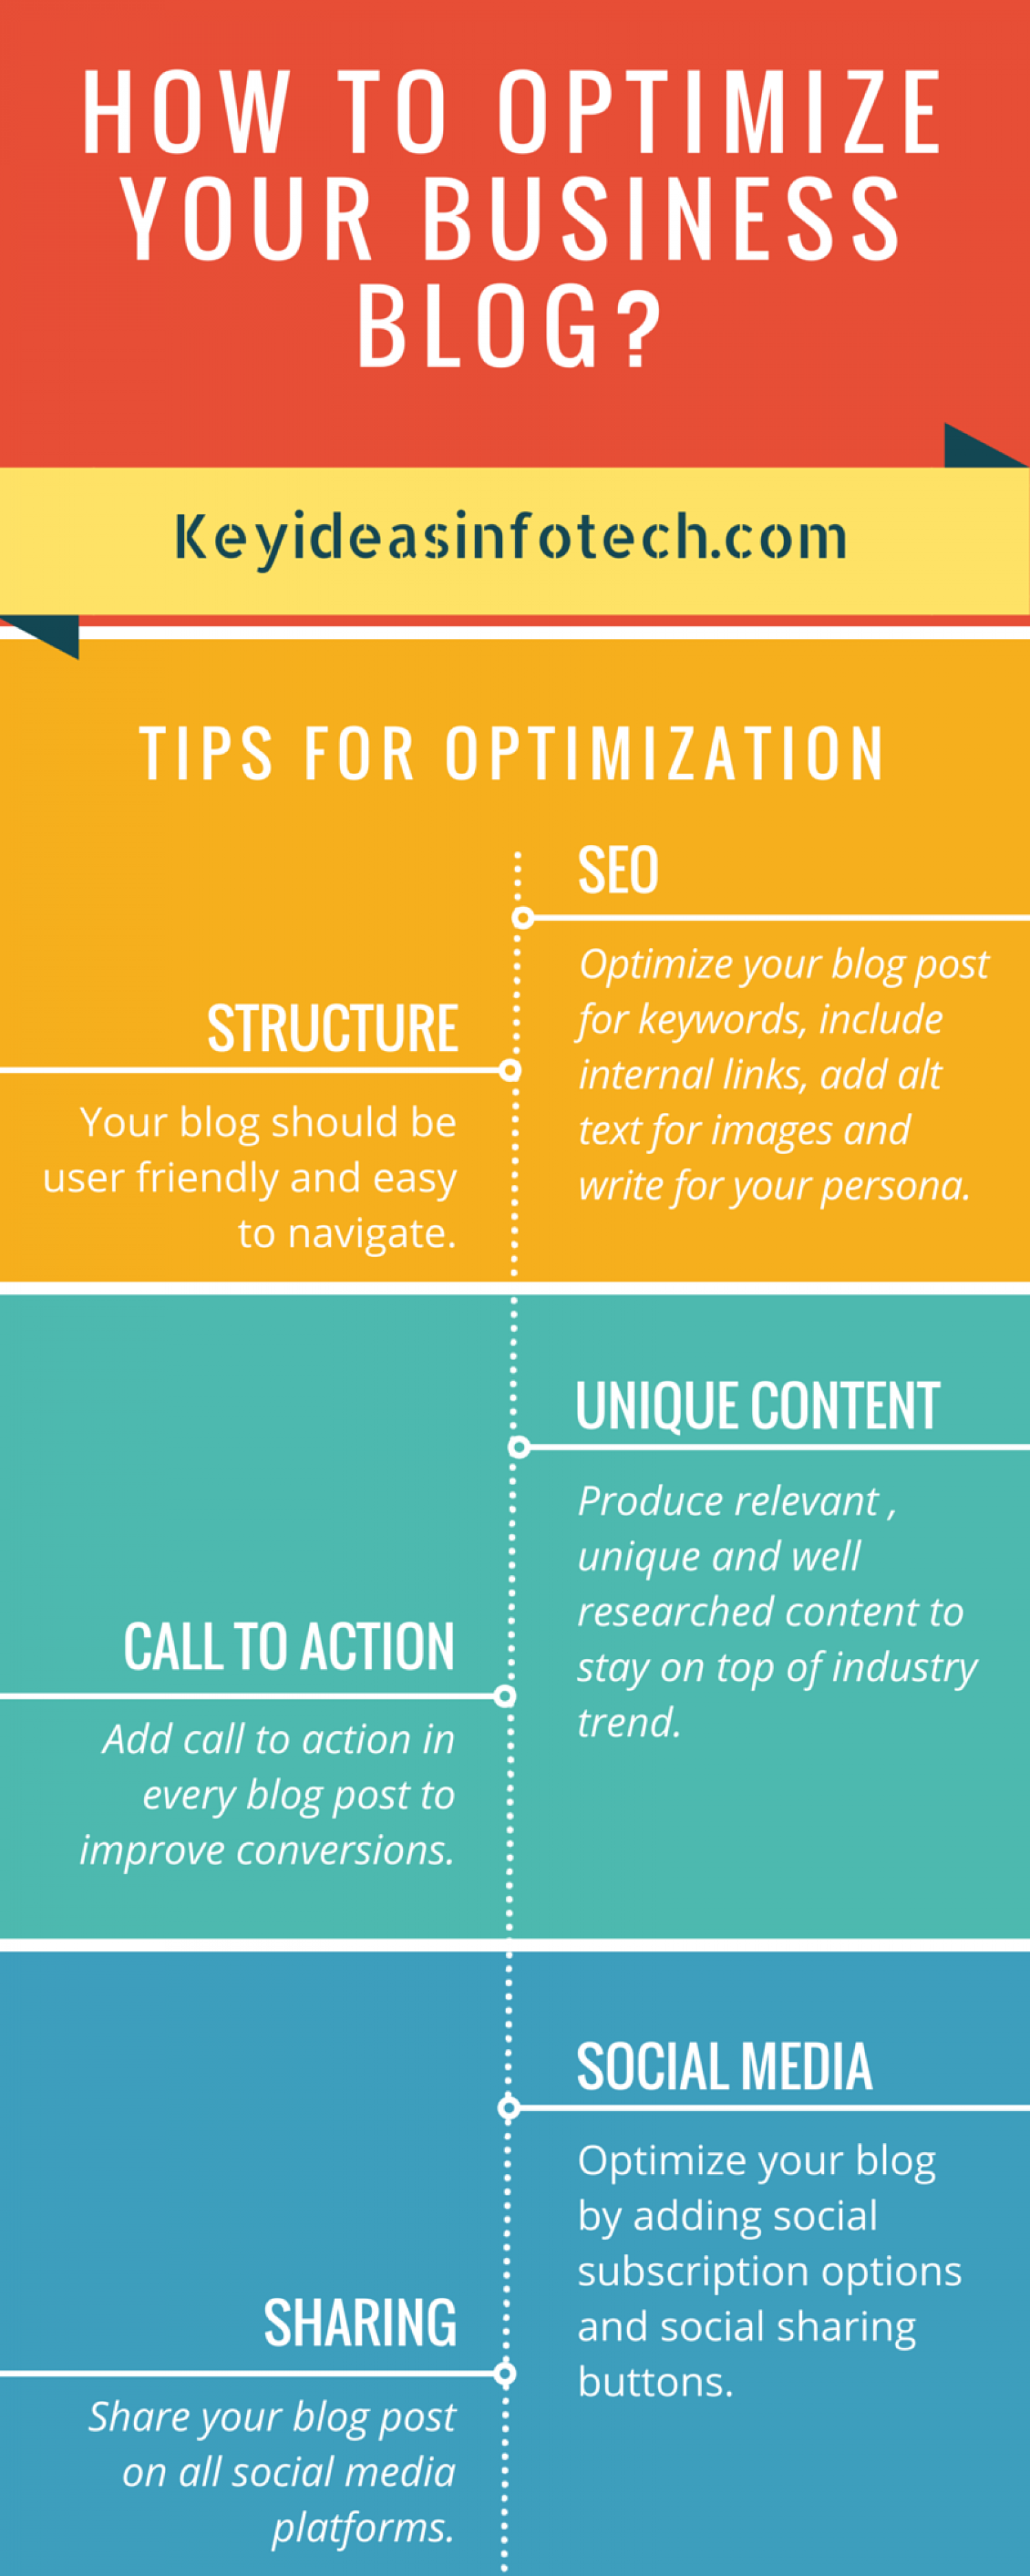 Five Simple Steps to Optimize Your Business Blog Infographic